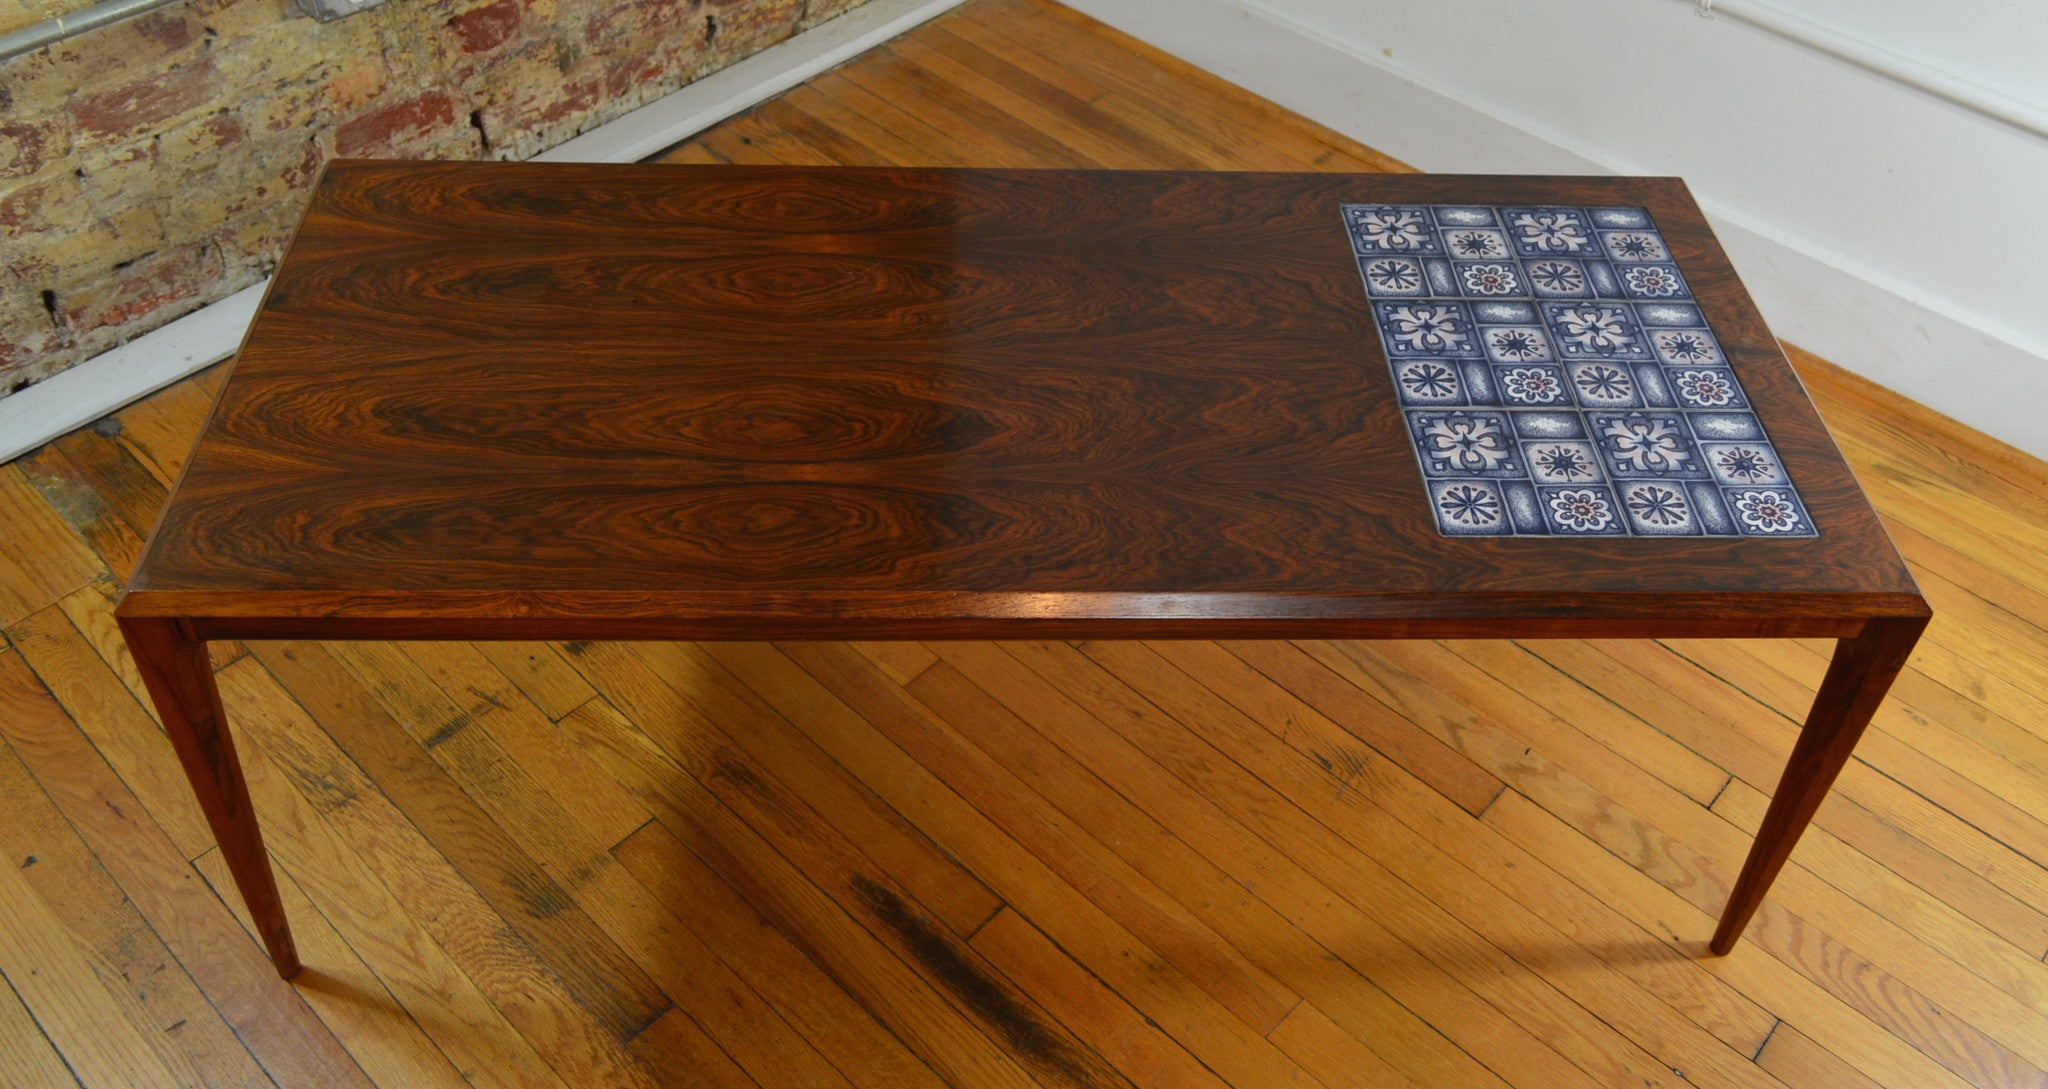 Charmant Rosewood And Tile Coffee Table By Johannes Andersen With Royal Copenhagen  Tiles